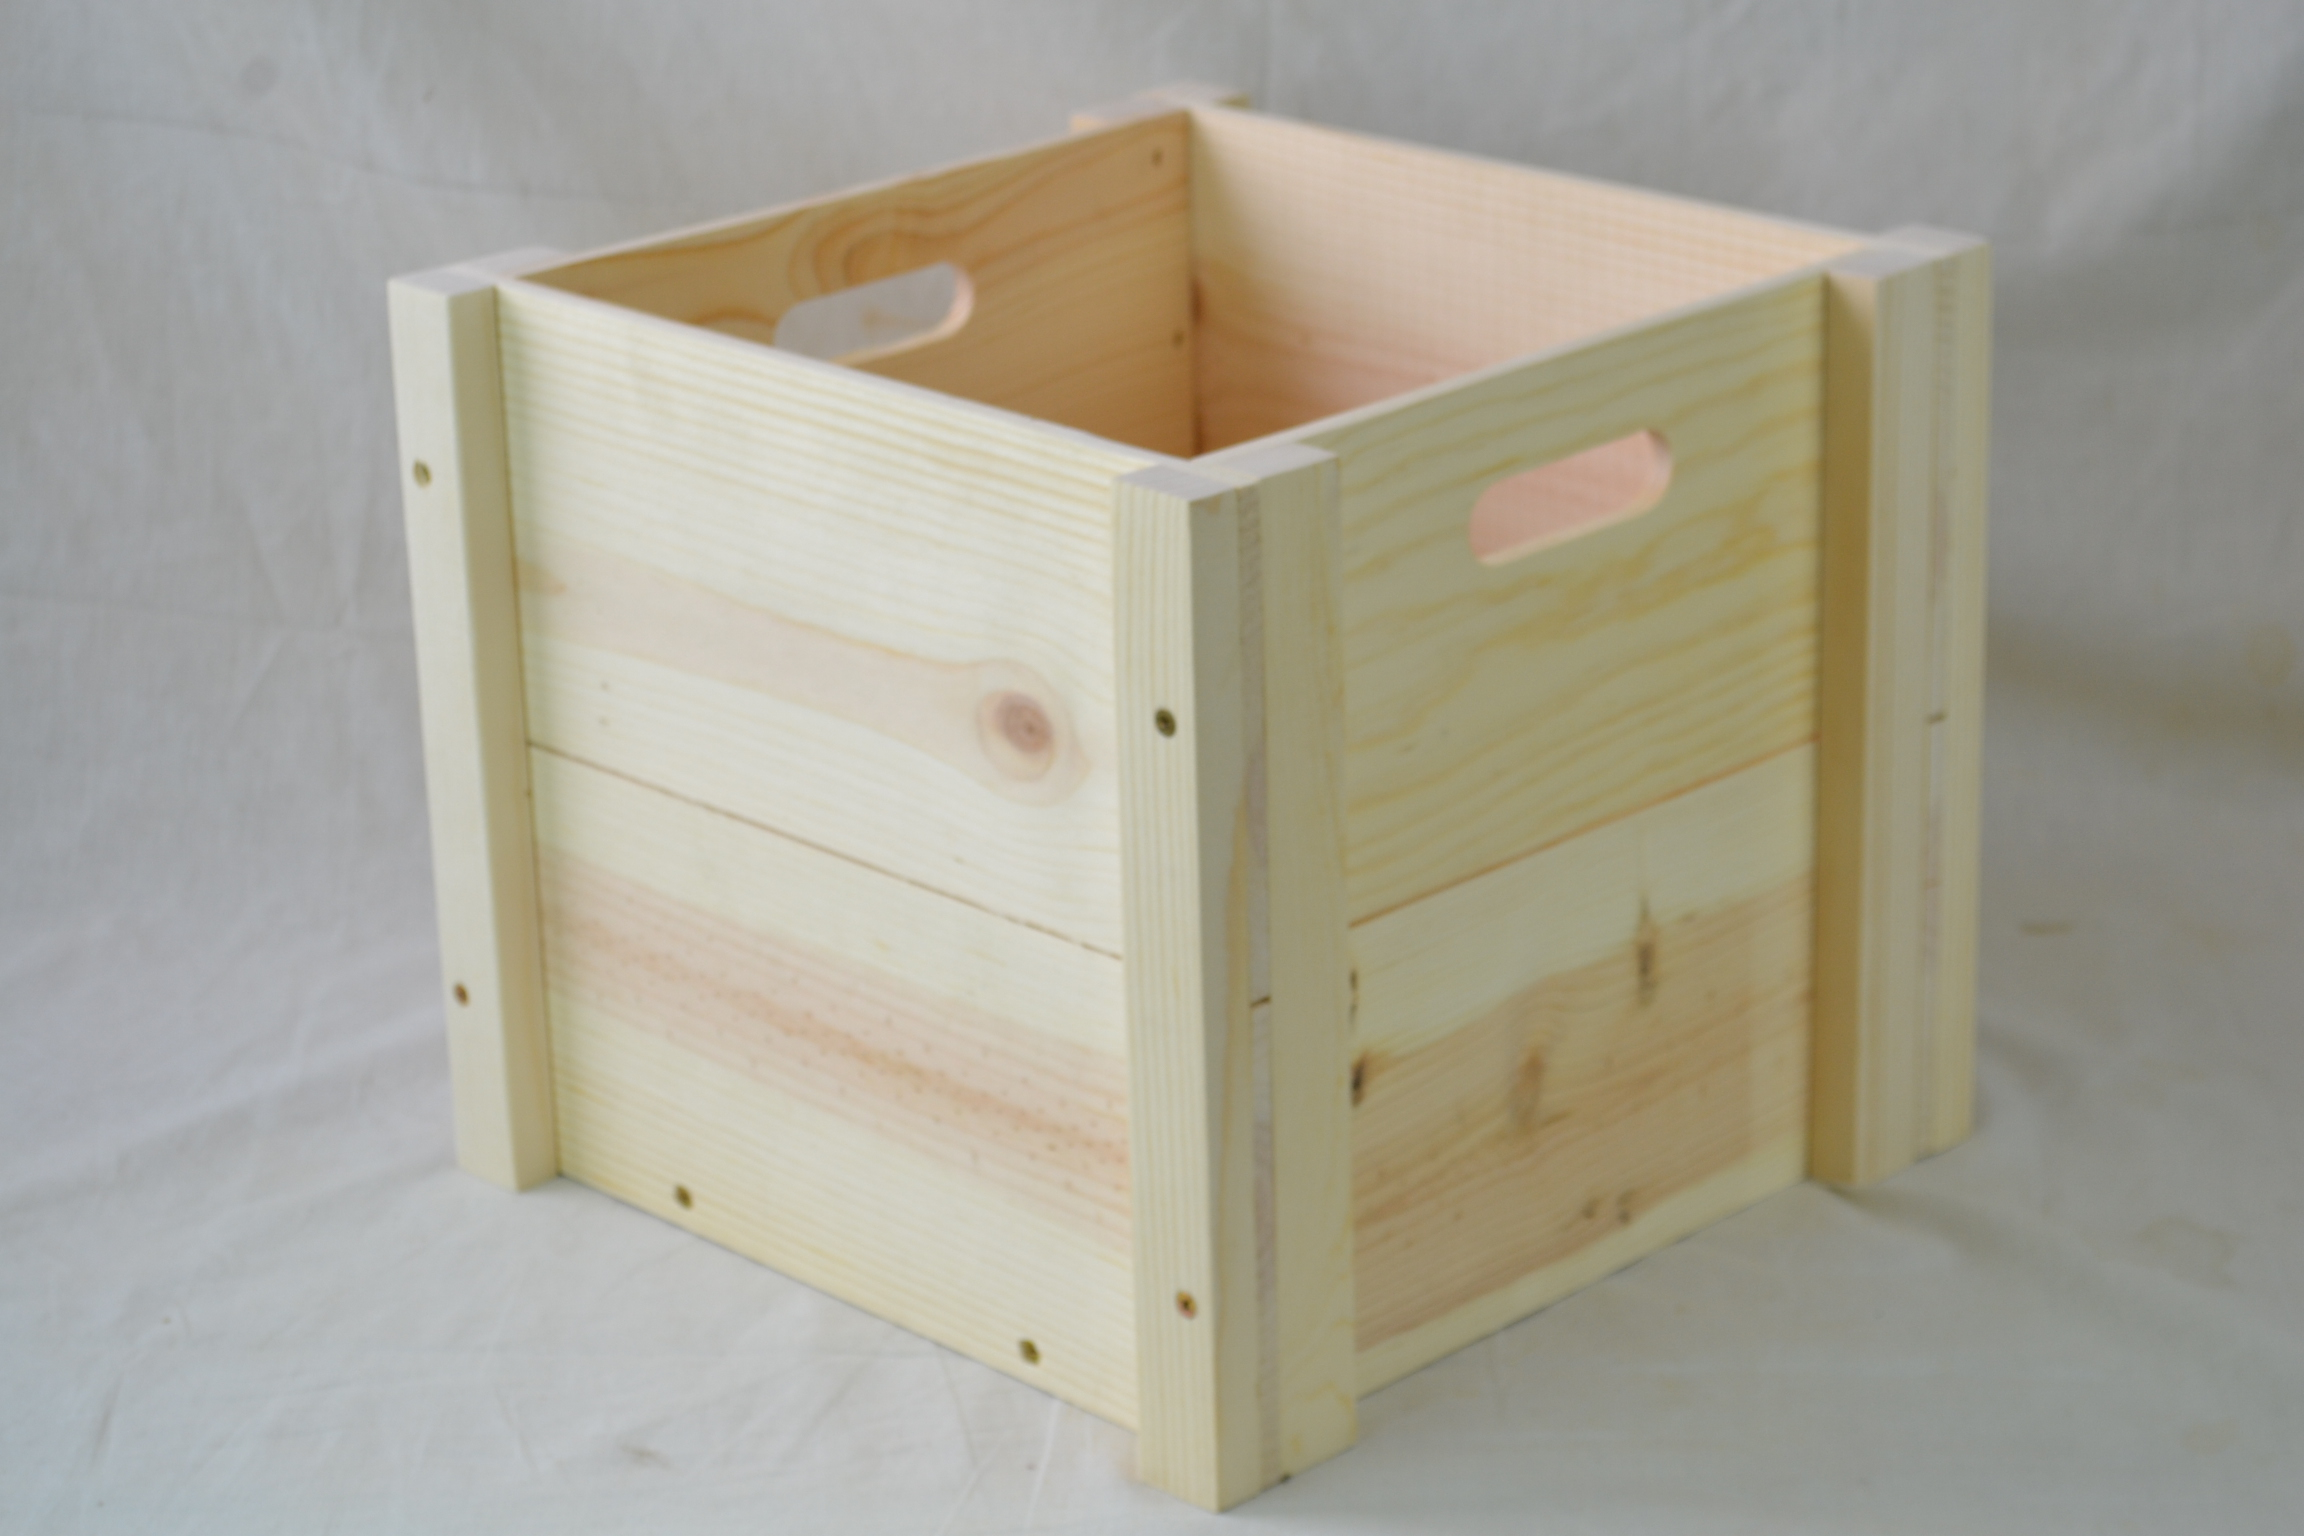 Wooden 14X14X12 Crate With Hand Holes Knockdown Style Free Shipping